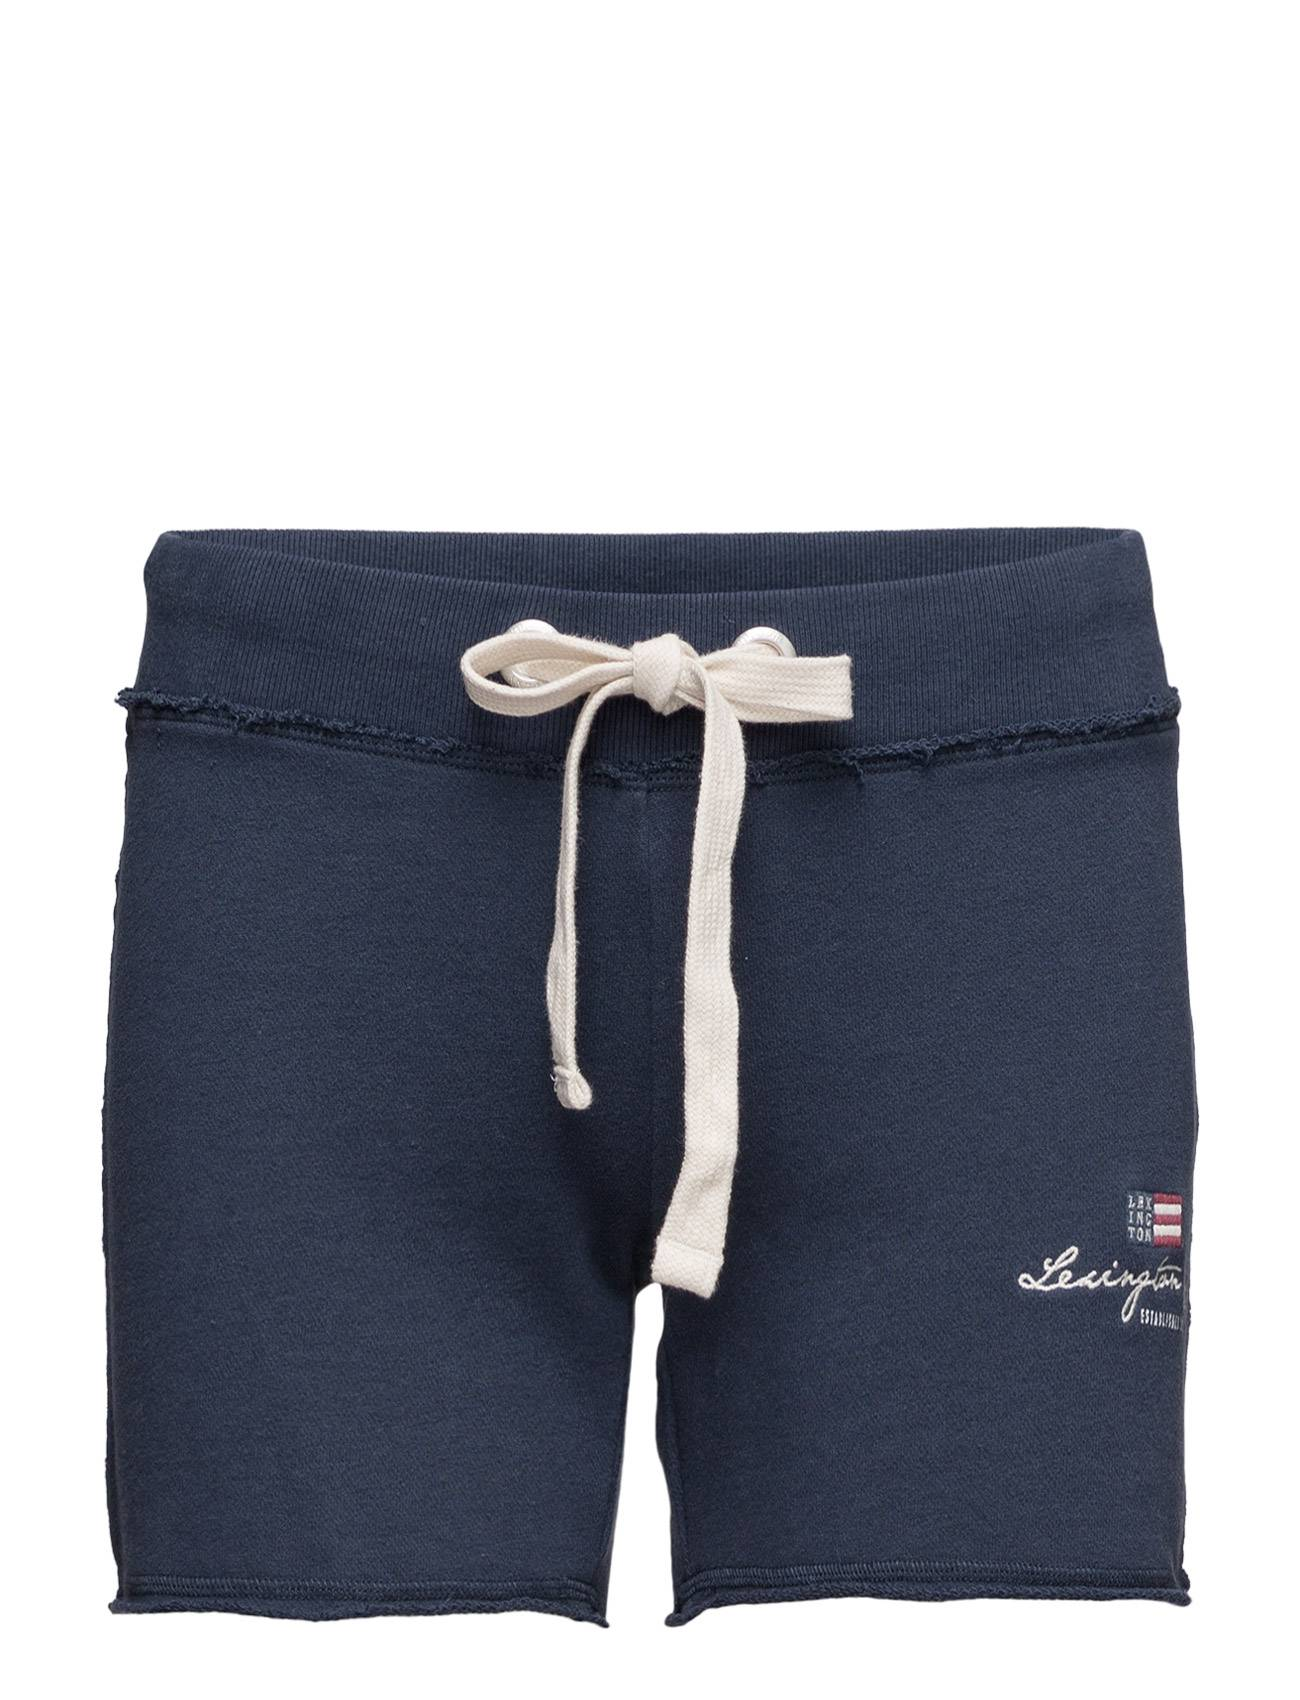 Lexington Company Naomi Shorts